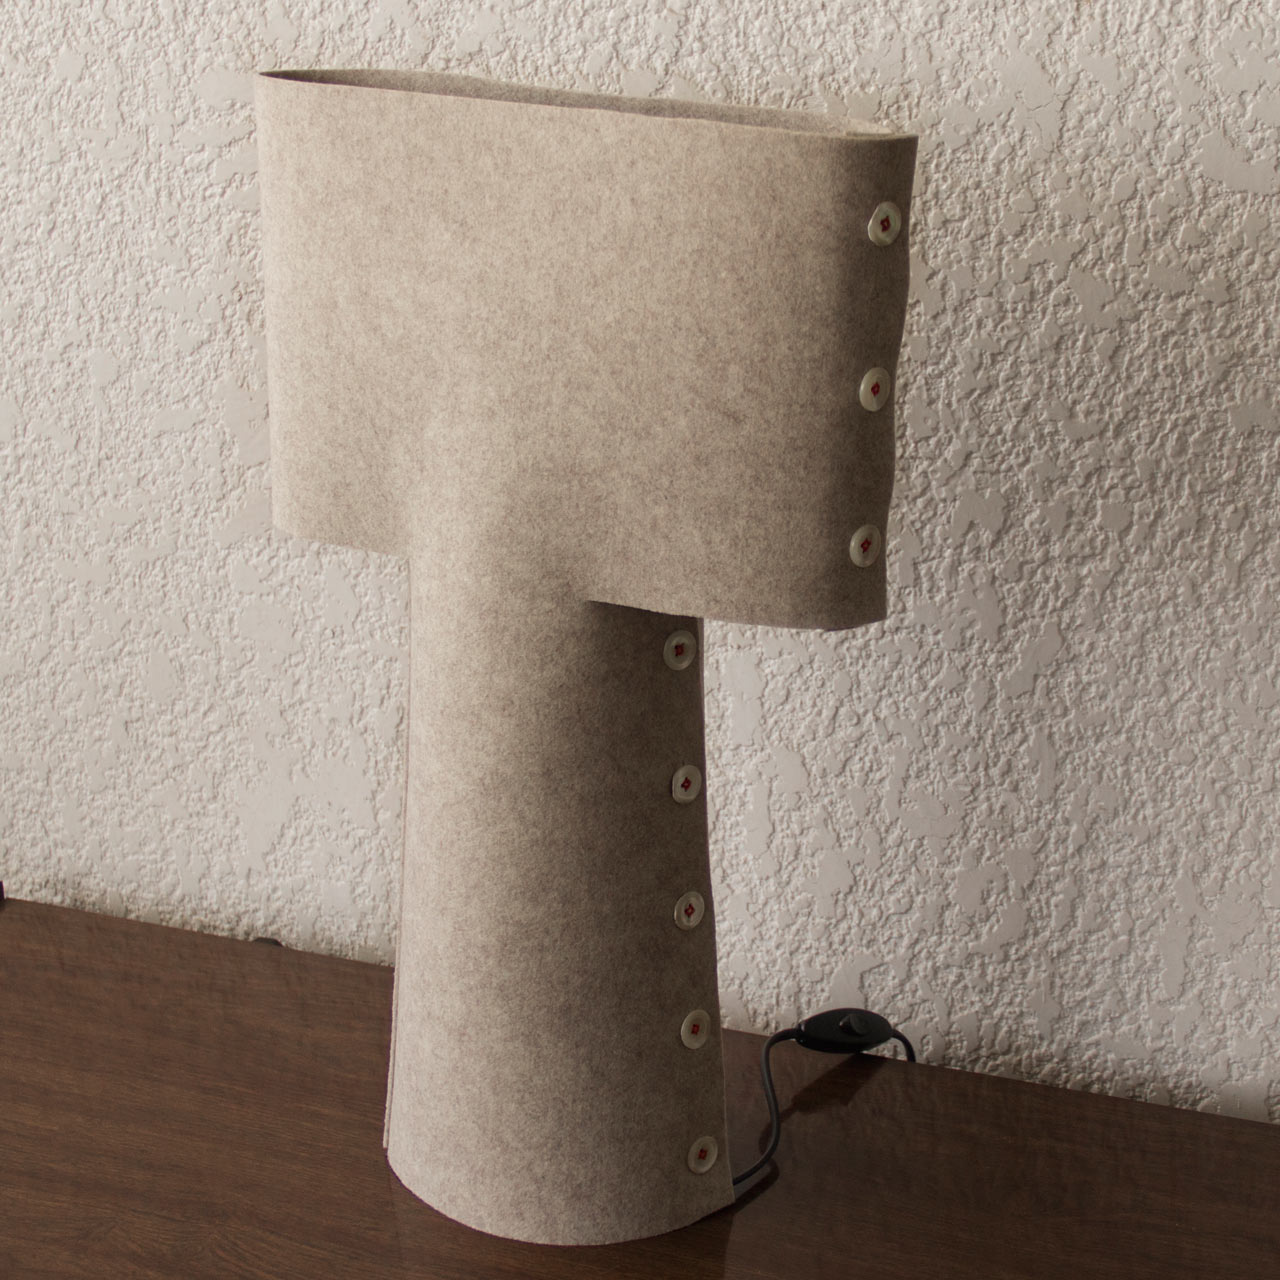 A Lamp Made Entirely at a Tailor's Shop